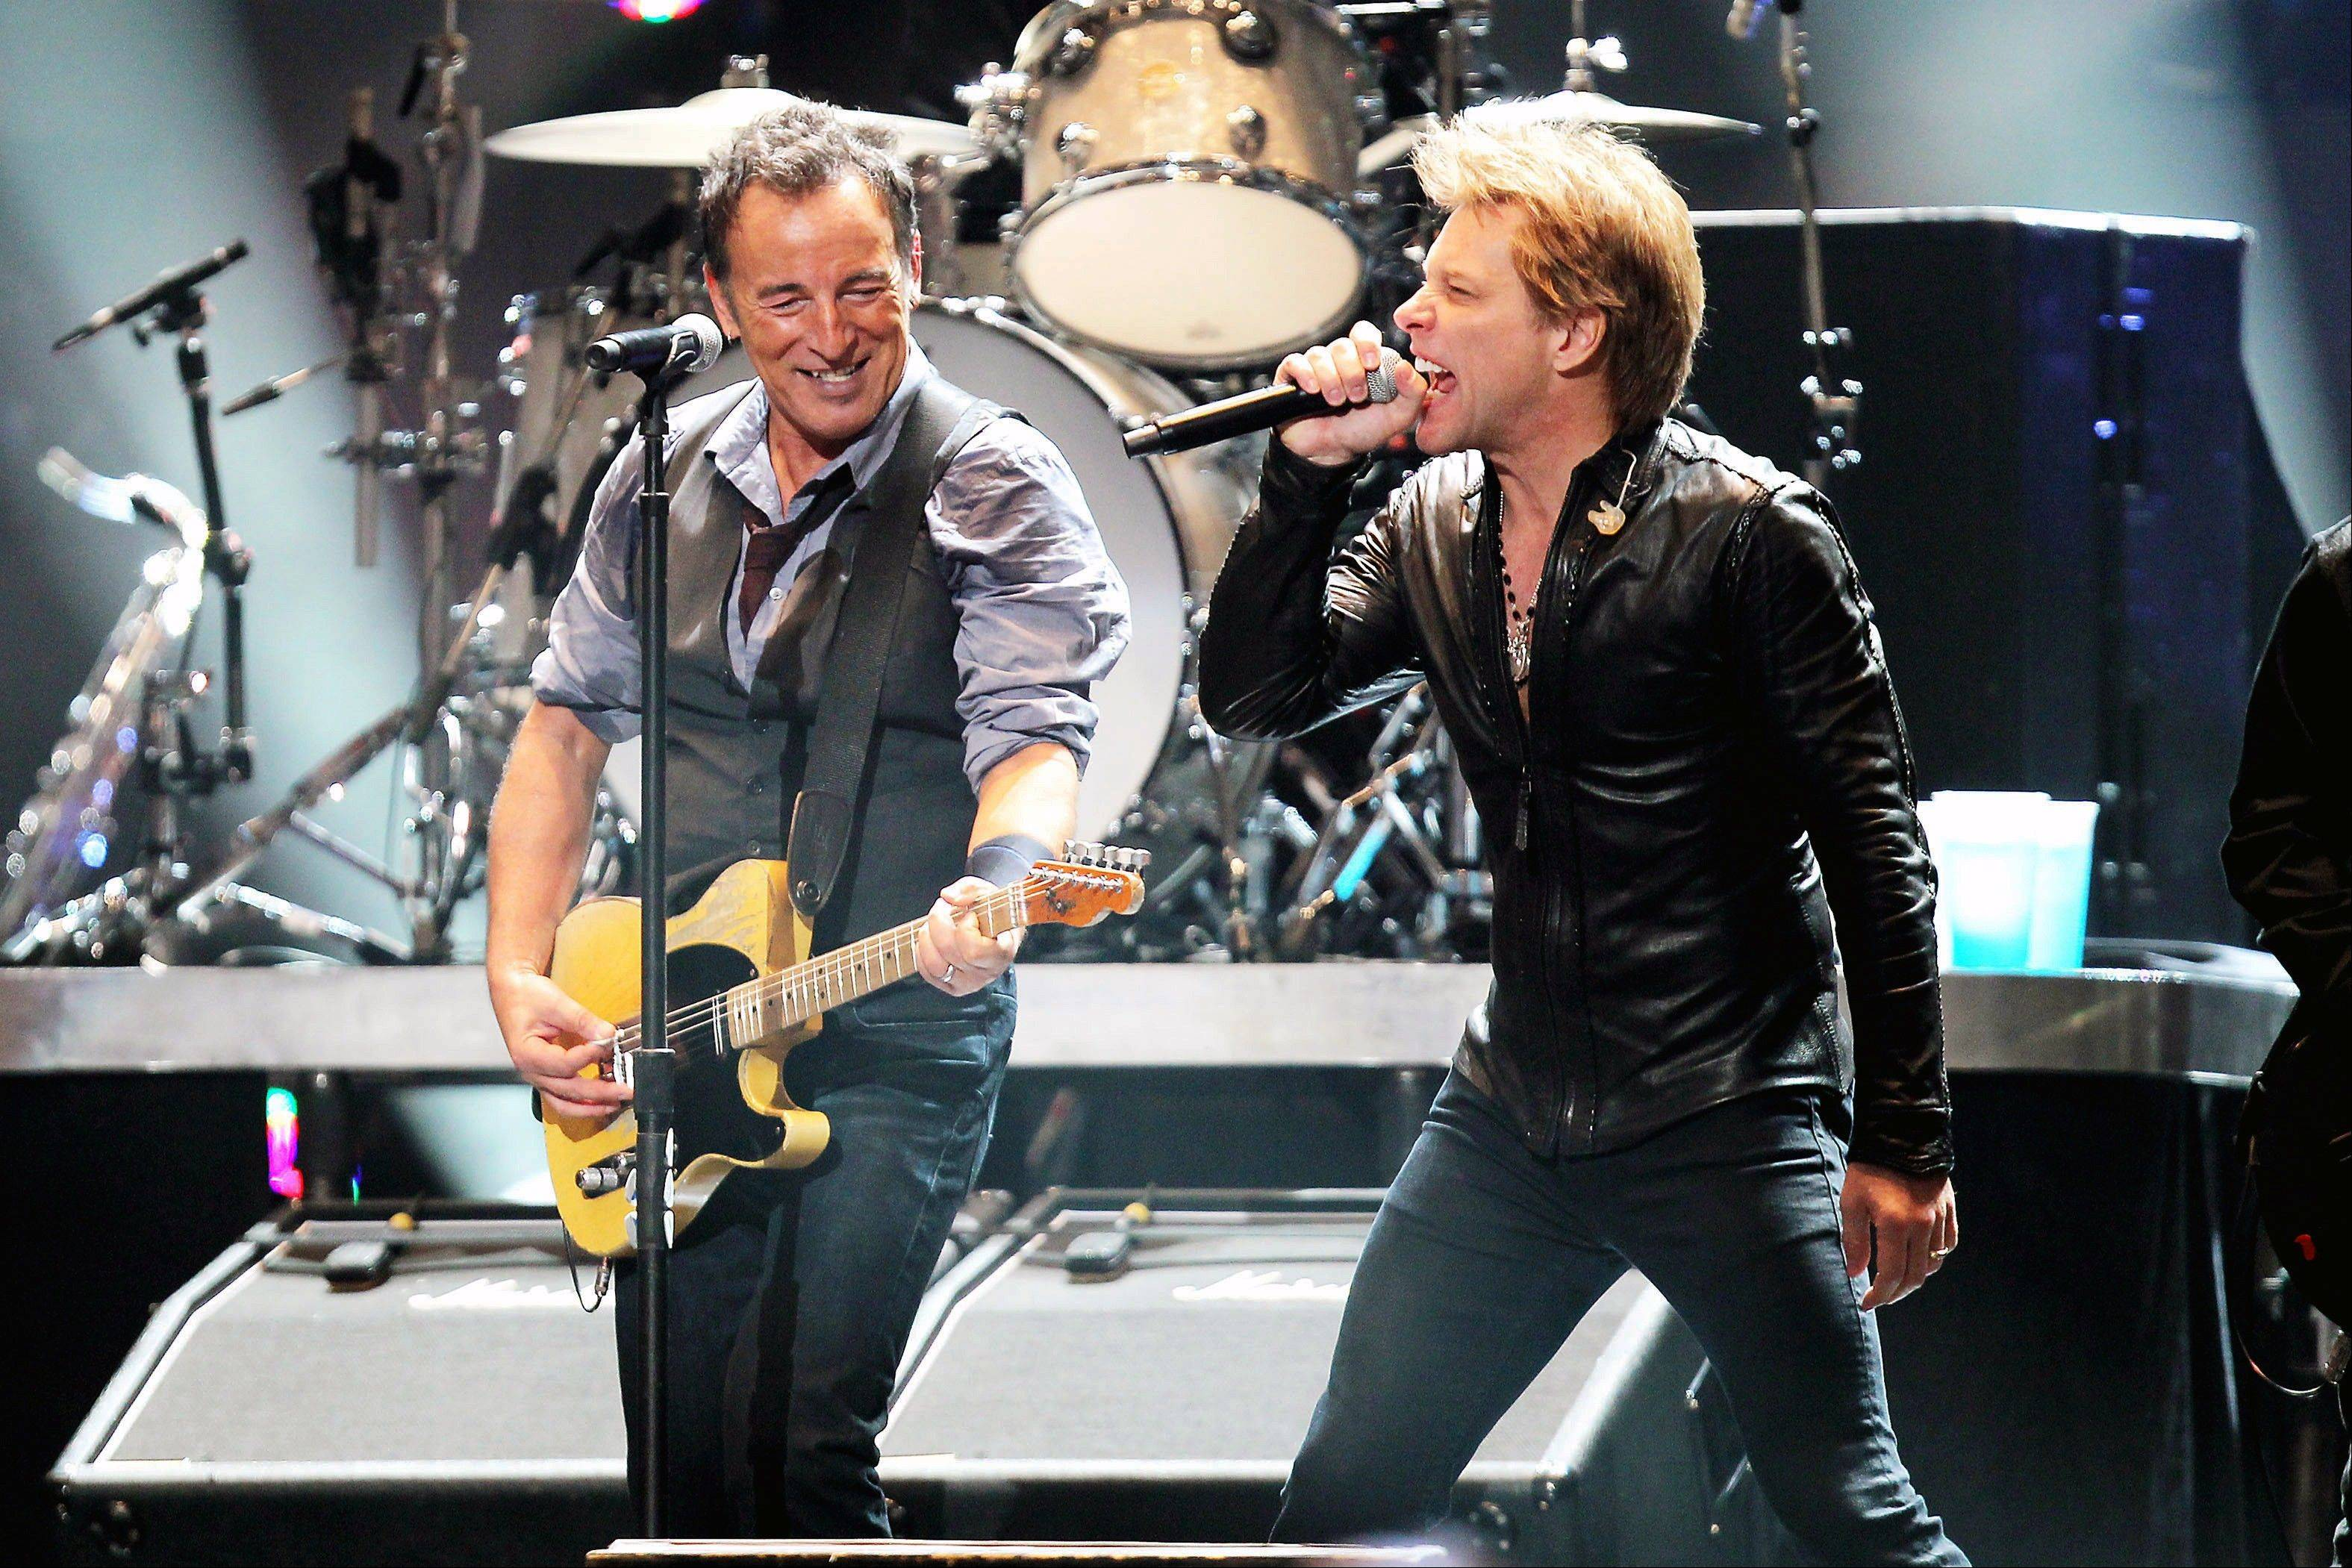 Bruce Springsteen, left, and Jon Bon Jovi perform Wednesday at the 12-12-12 The Concert for Sandy Relief at Madison Square Garden in New York.